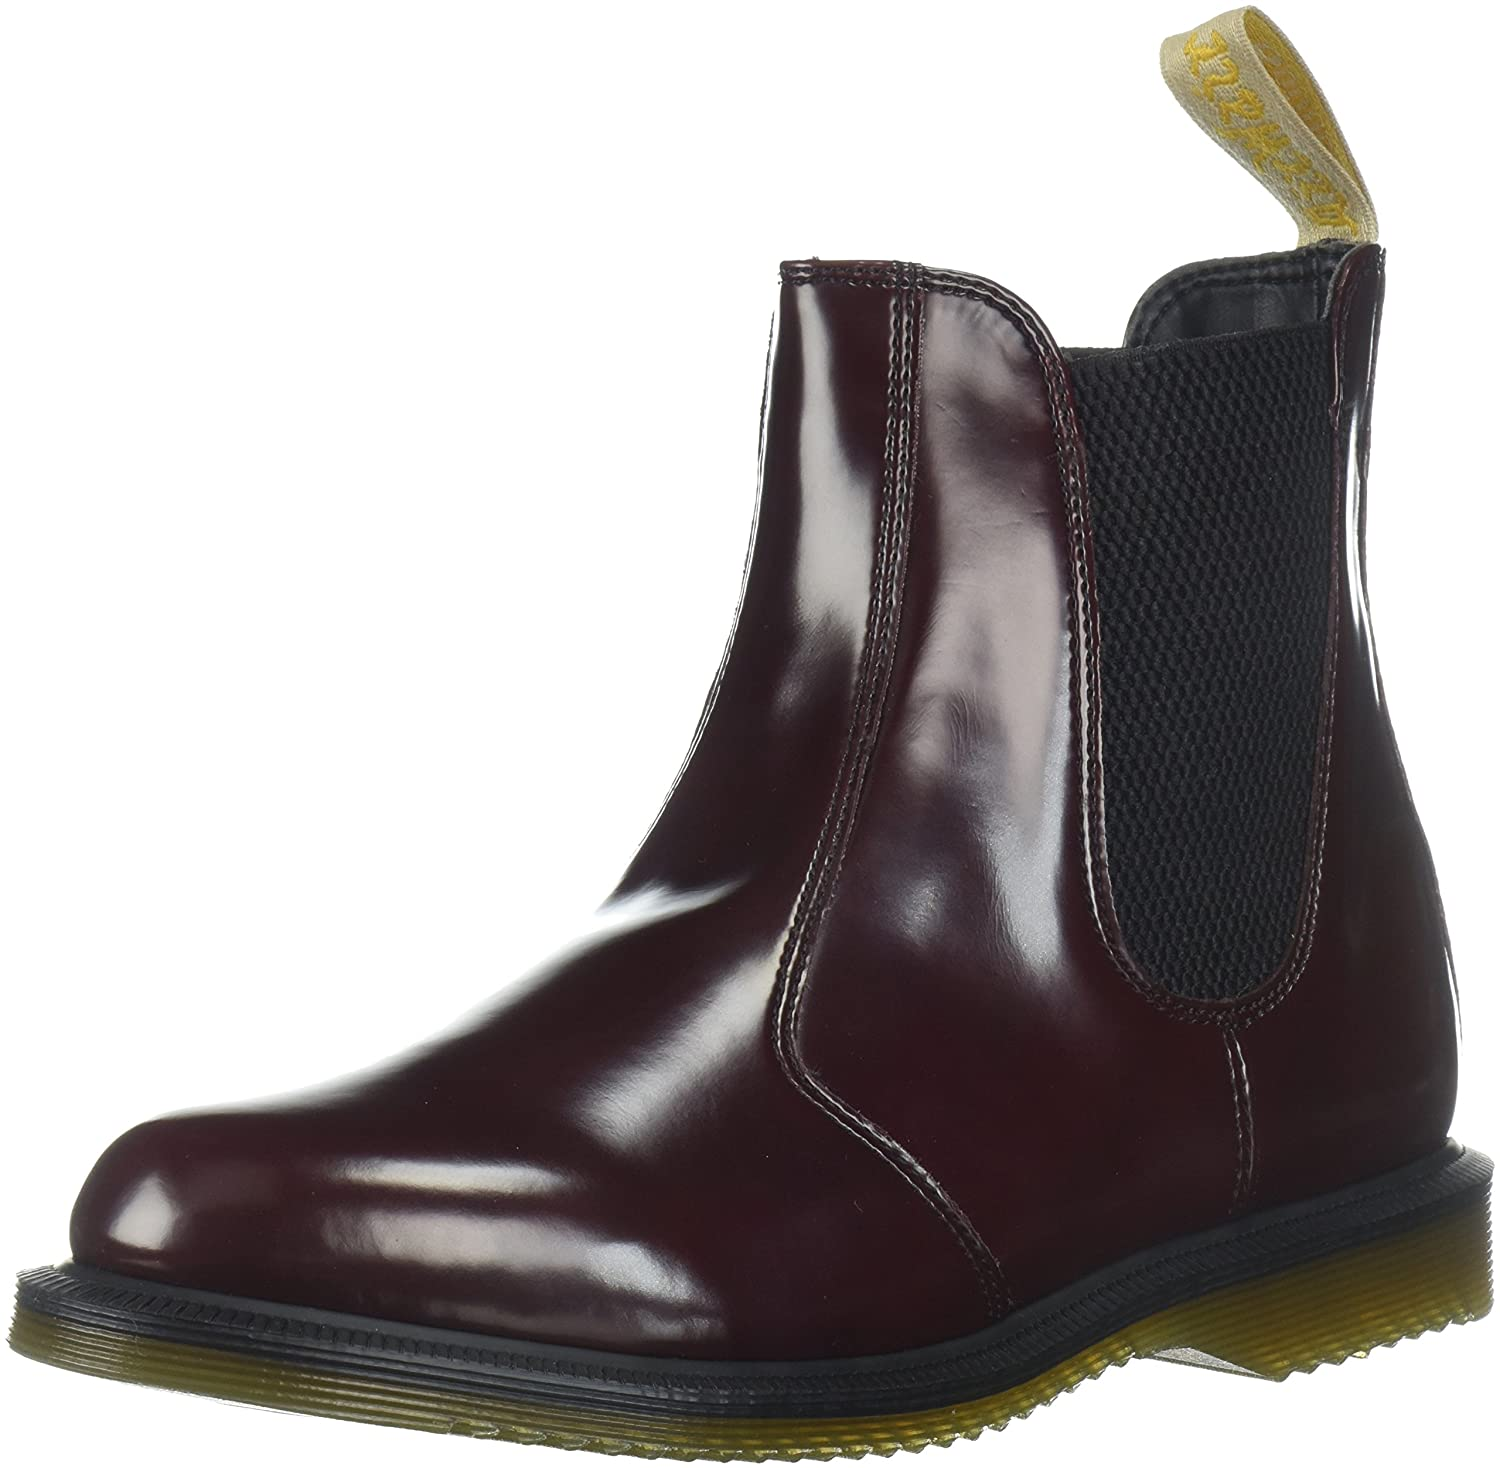 Dr. Martens Women's Vegan Flora Cherry Ankle Boot B0747J4ZZ6 3 Medium UK (5 US)|Cherry Red